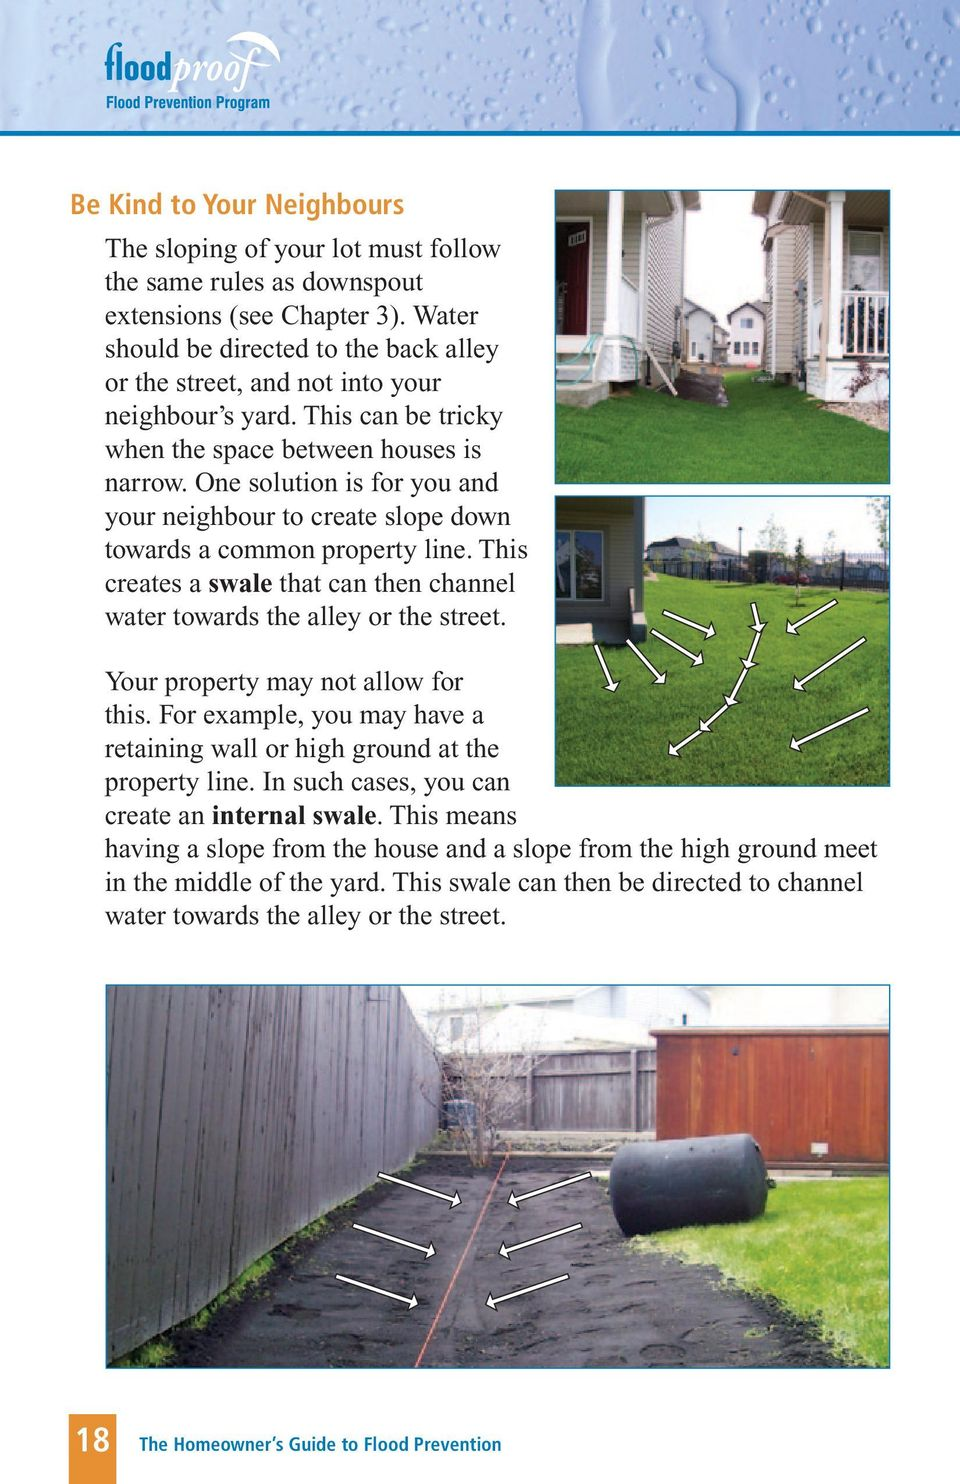 One solution is for you and your neighbour to create slope down towards a common property line. This creates a swale that can then channel water towards the alley or the street.